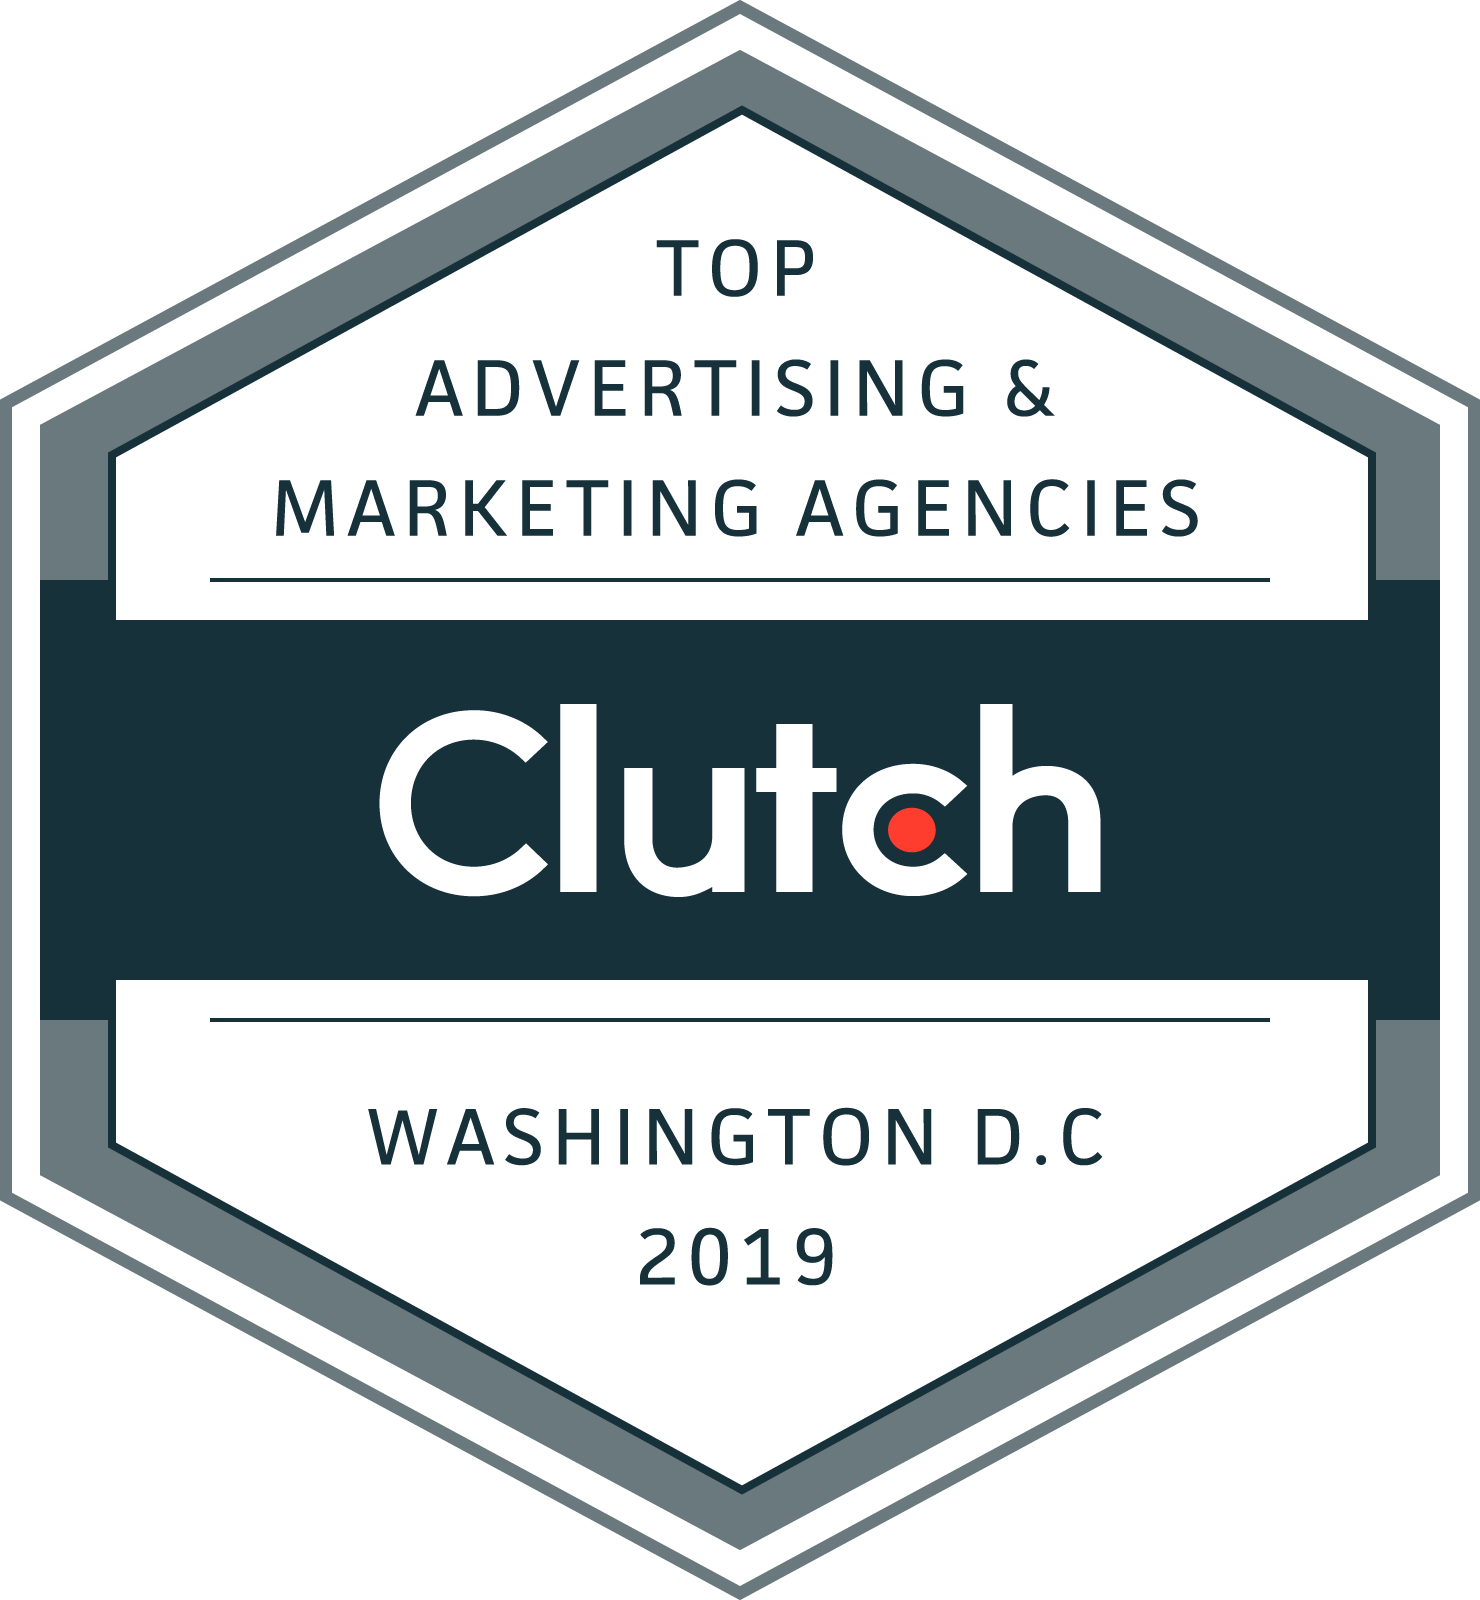 Clutch Research Names Borenstein Group One of Top Leaders in